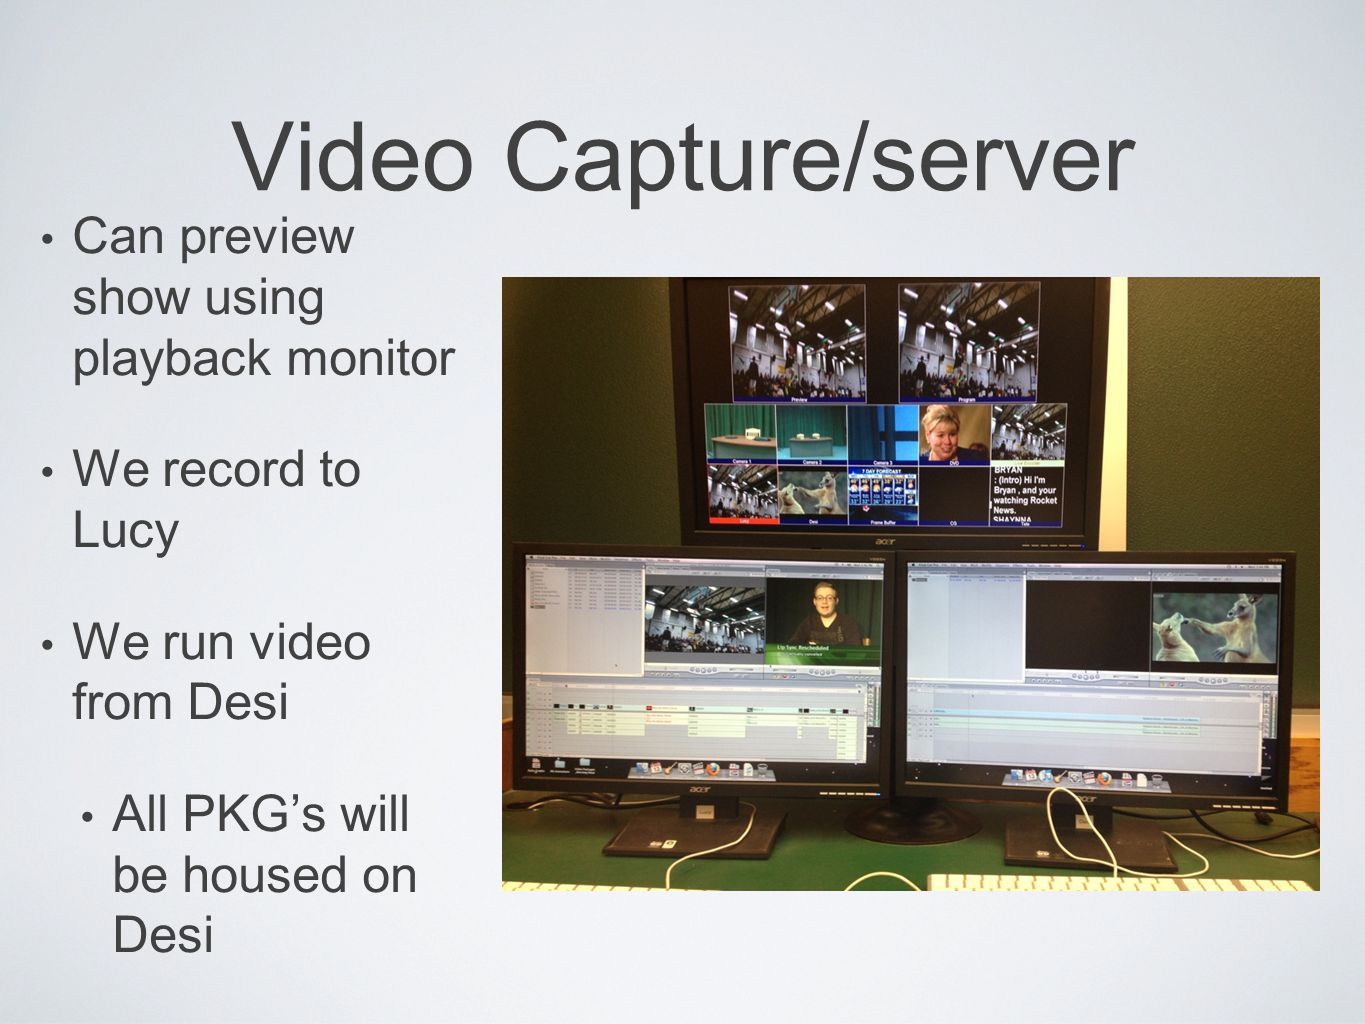 Video Capture/server Can preview show using playback monitor We record to Lucy We run video from Desi All PKG's will be housed on Desi